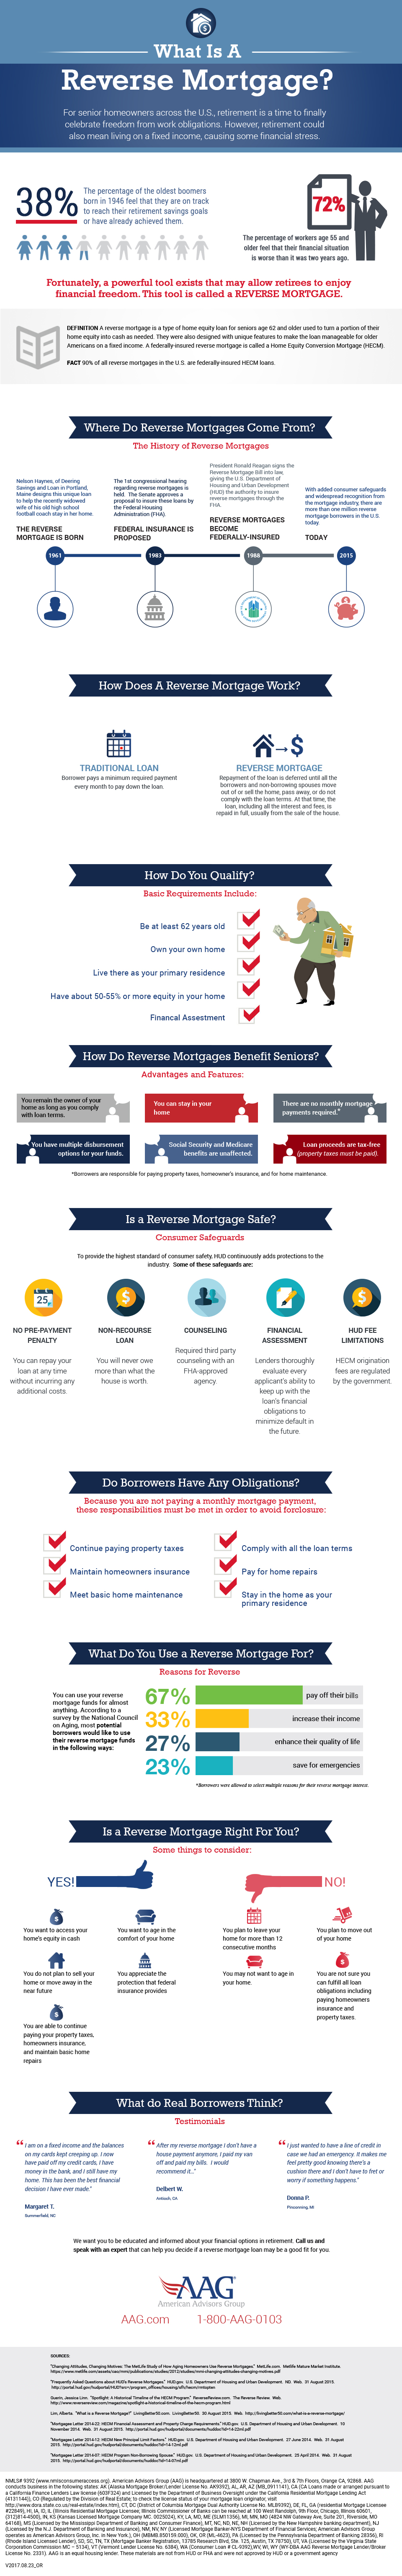 What Is A Reverse Mortgage Loan? - American Advisors Group